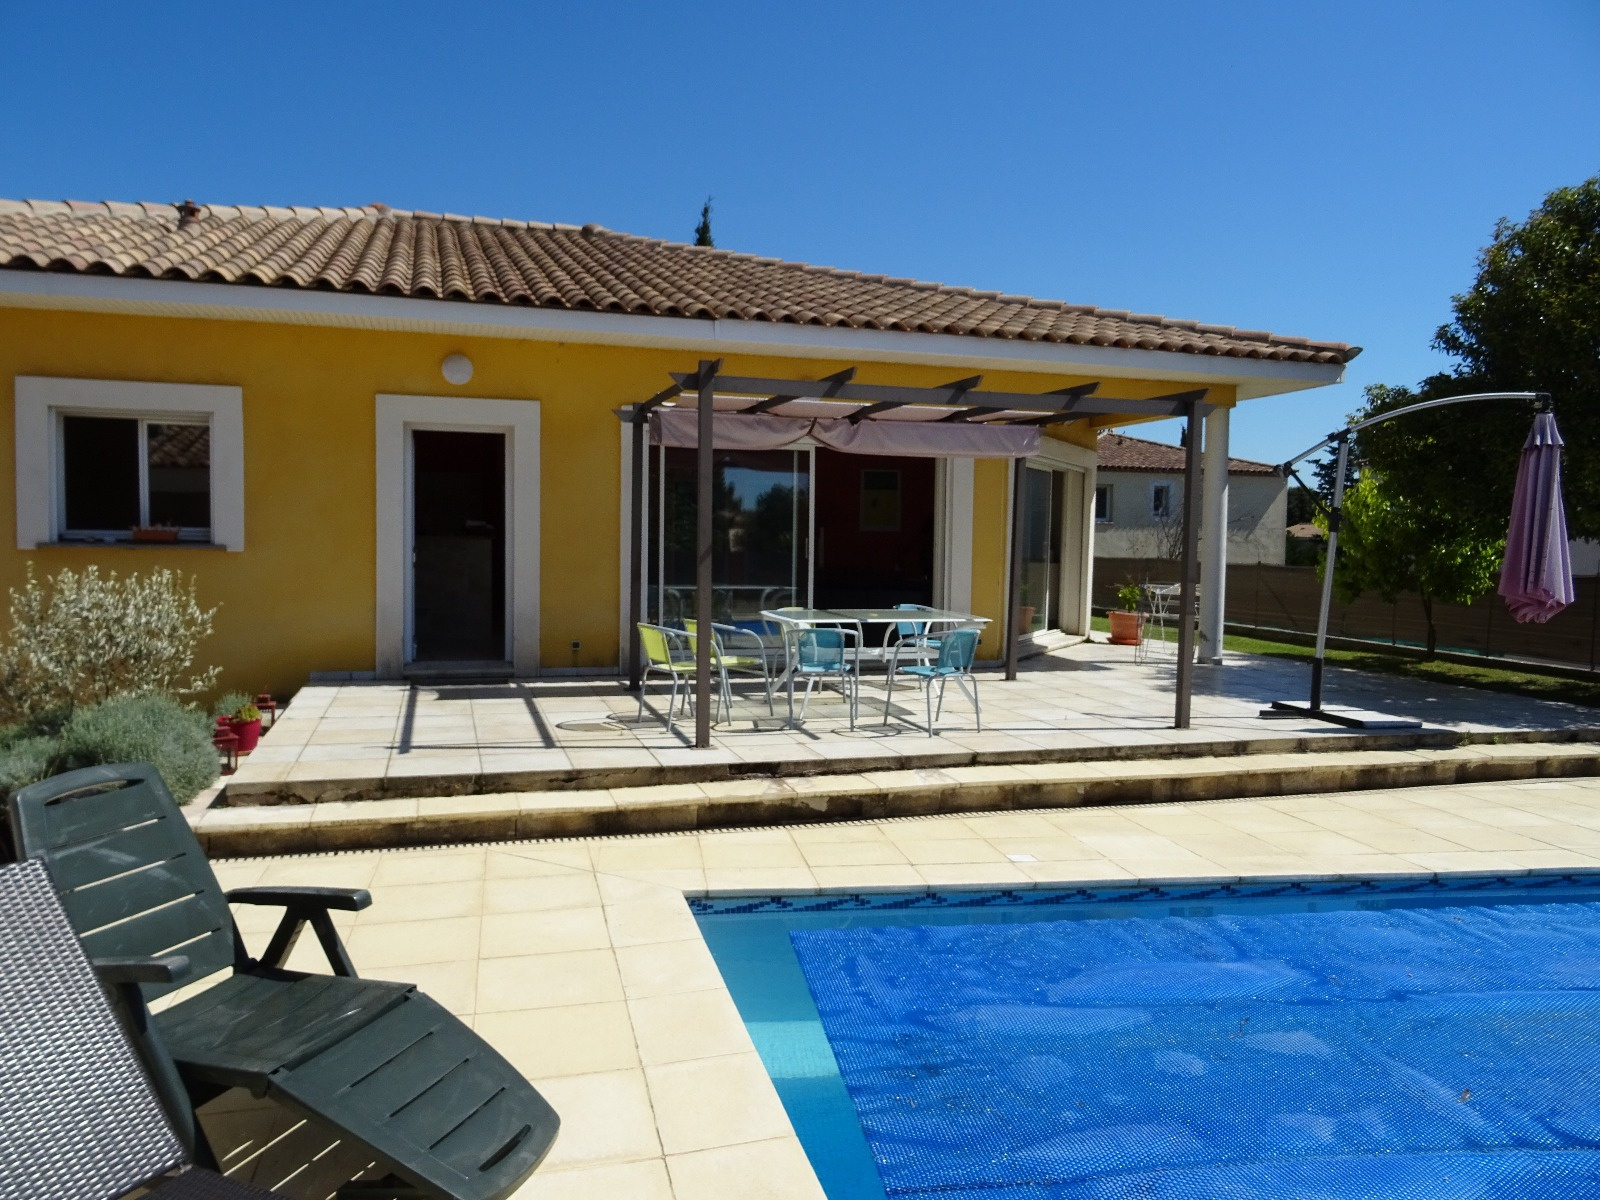 Adg 34 immo agence immobili re saint aun s 34130 for Agence immobiliere 34